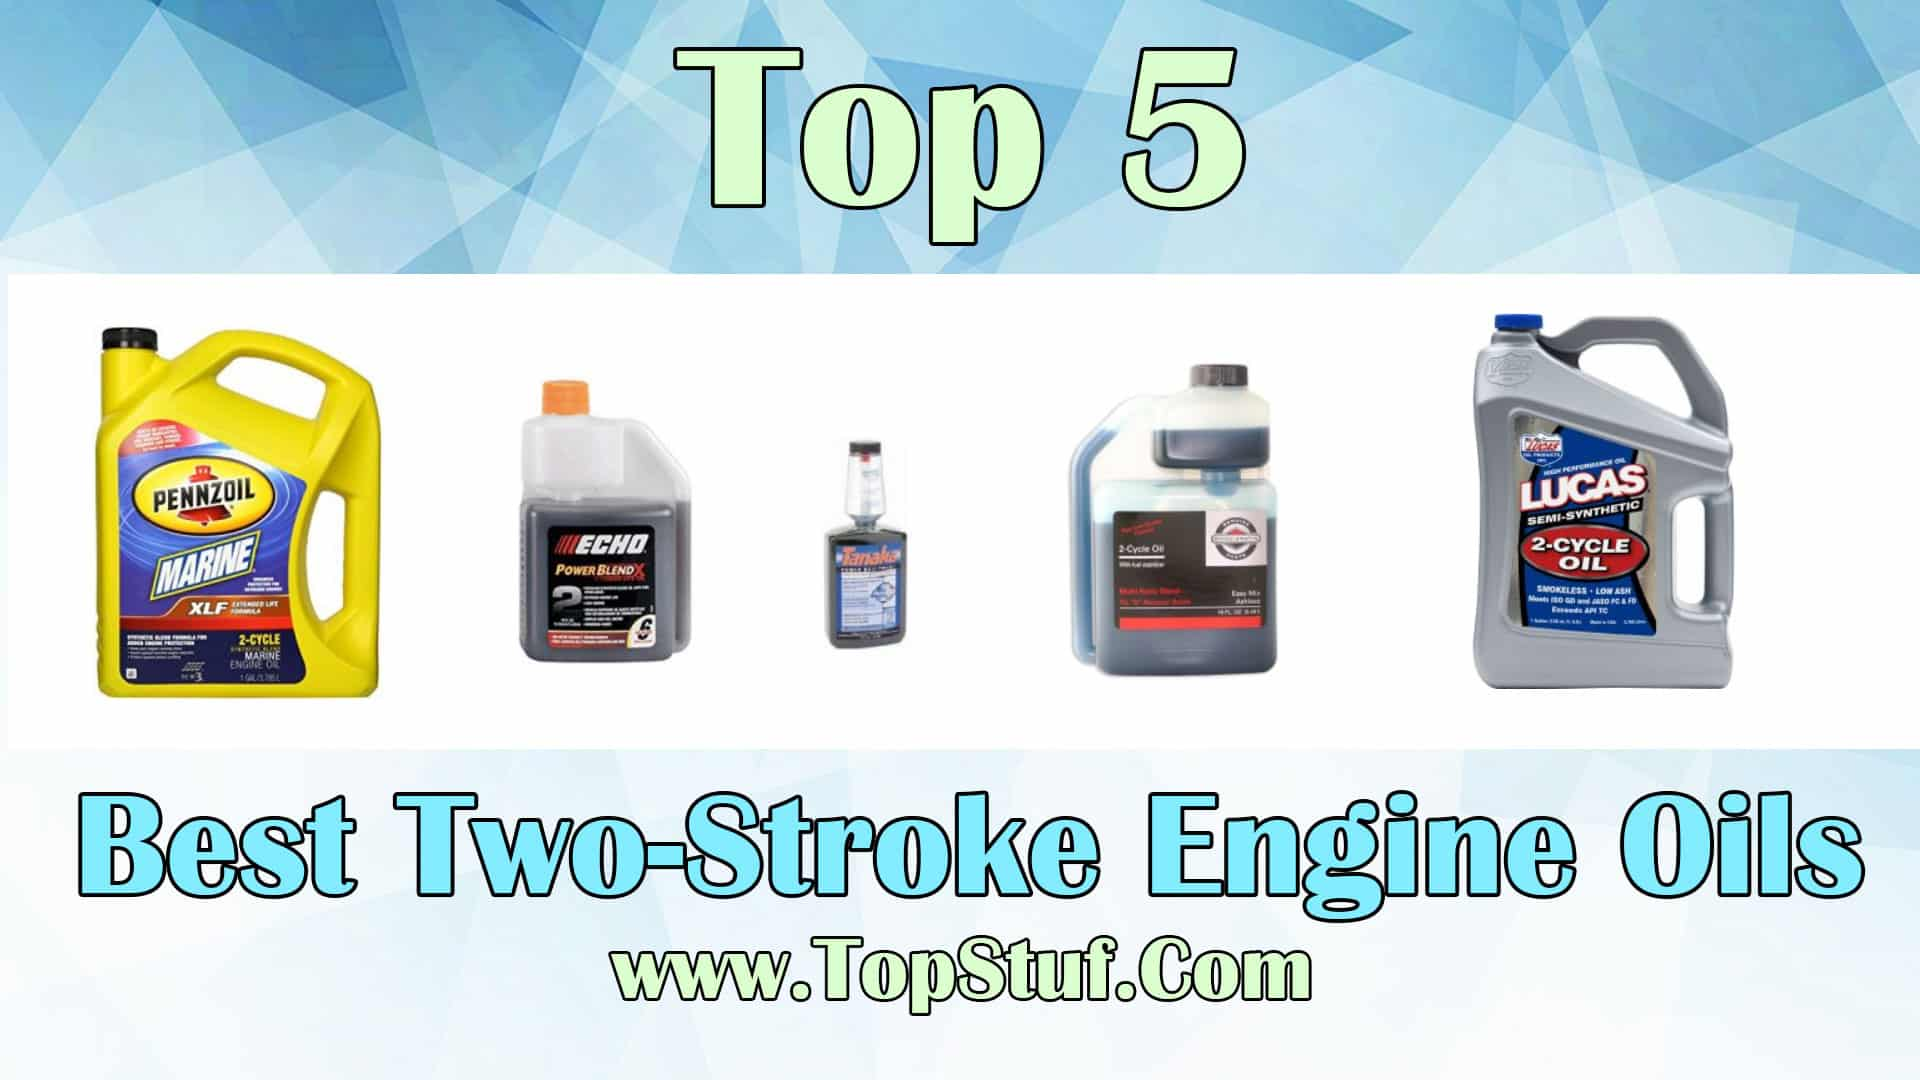 Two-Stroke Engine Oils